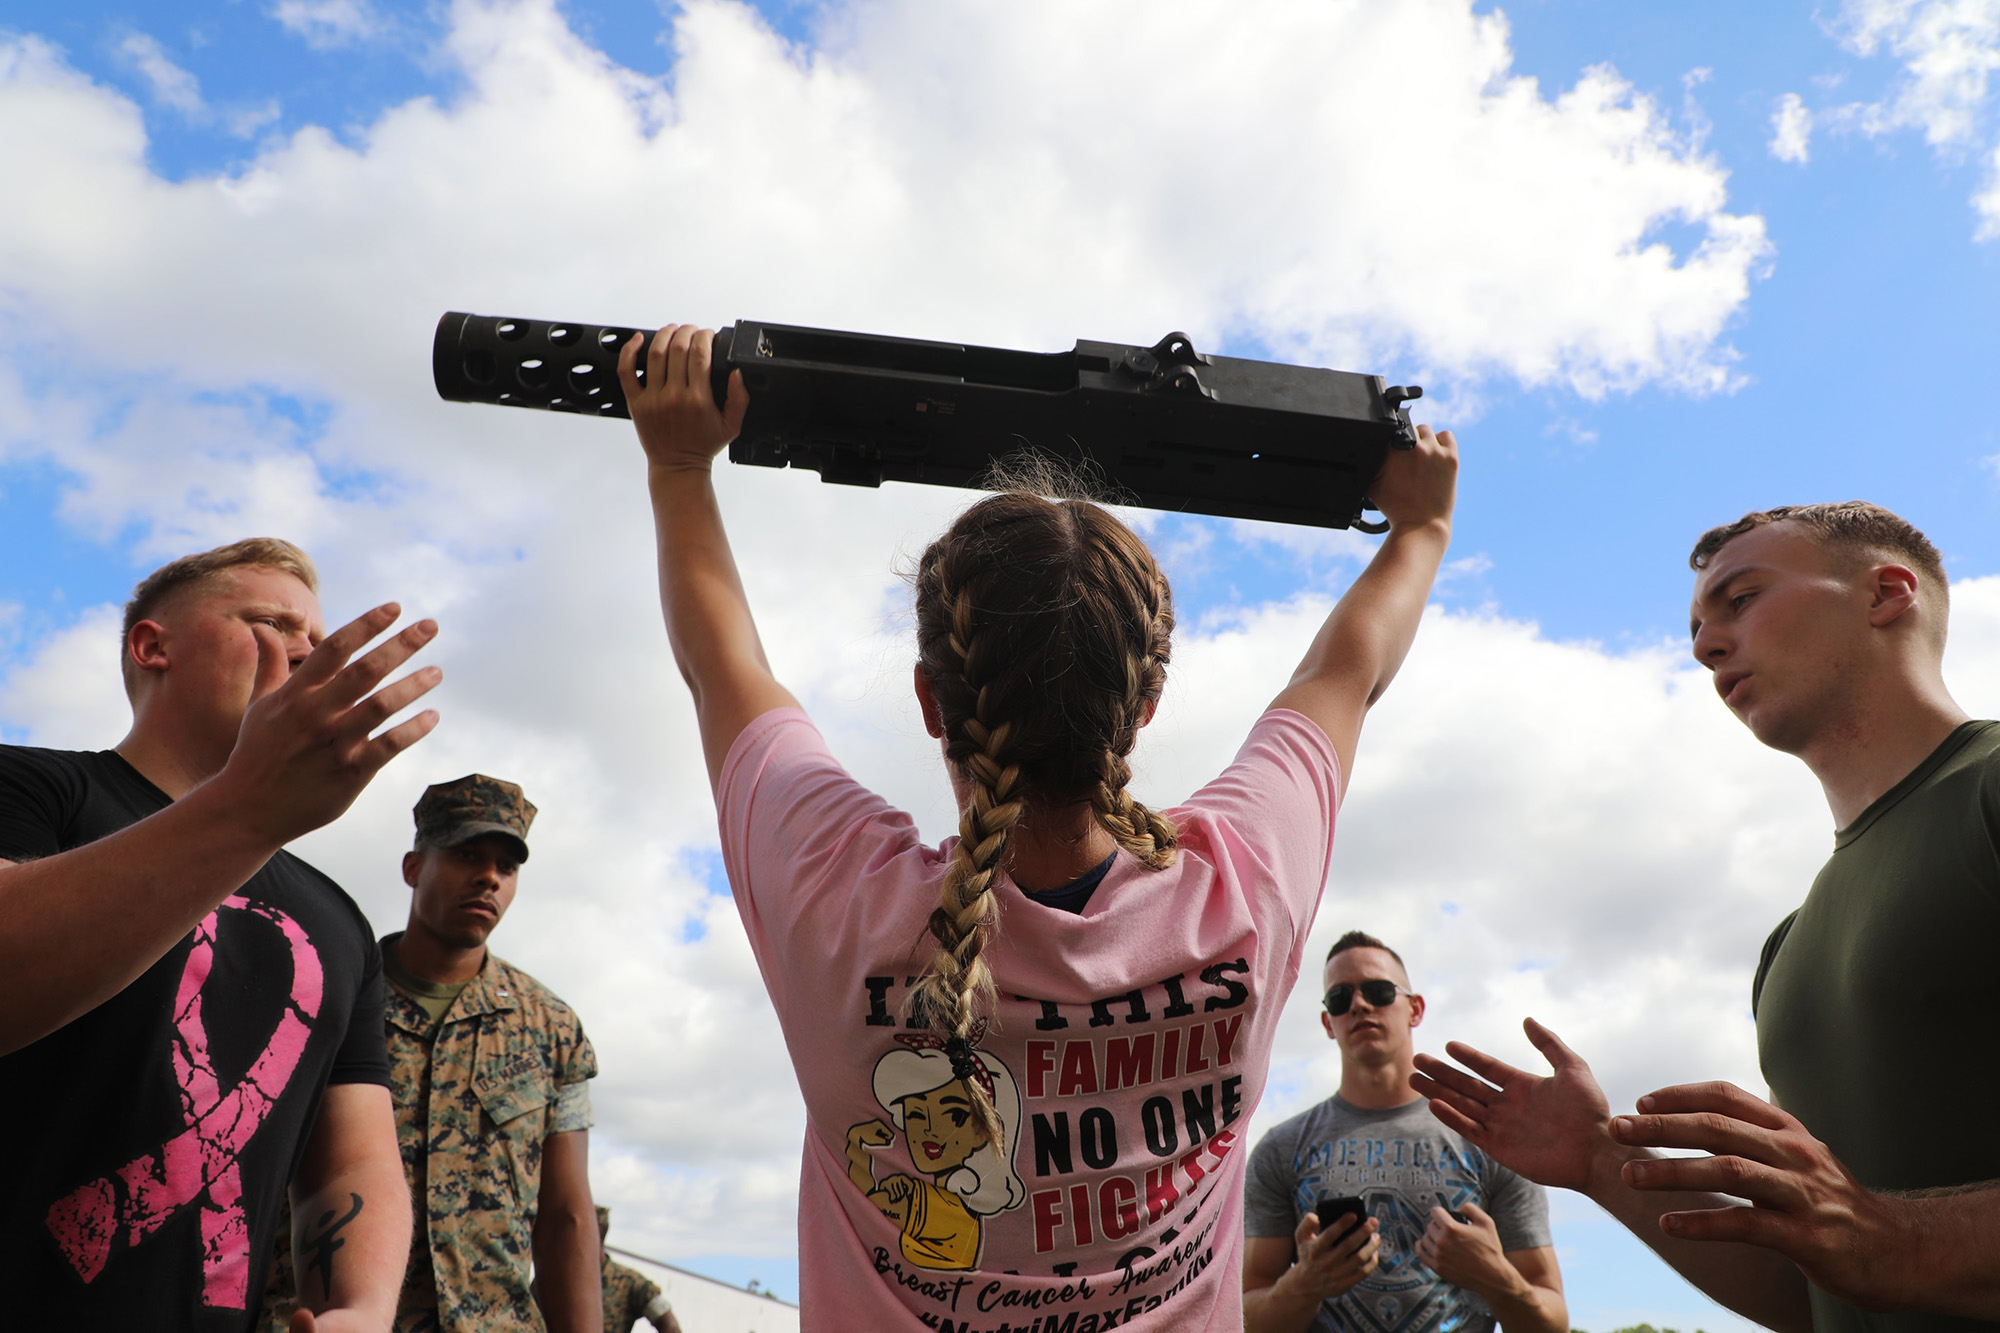 Cpl. Alexandra Veal executes an overhead press with an M2 .50 caliber machine gun during the unit's Warrior Week competition at Camp Lejeune, N.C., Oct. 15, 2020. (Lance Cpl. David I. Romero/Marine Corps)